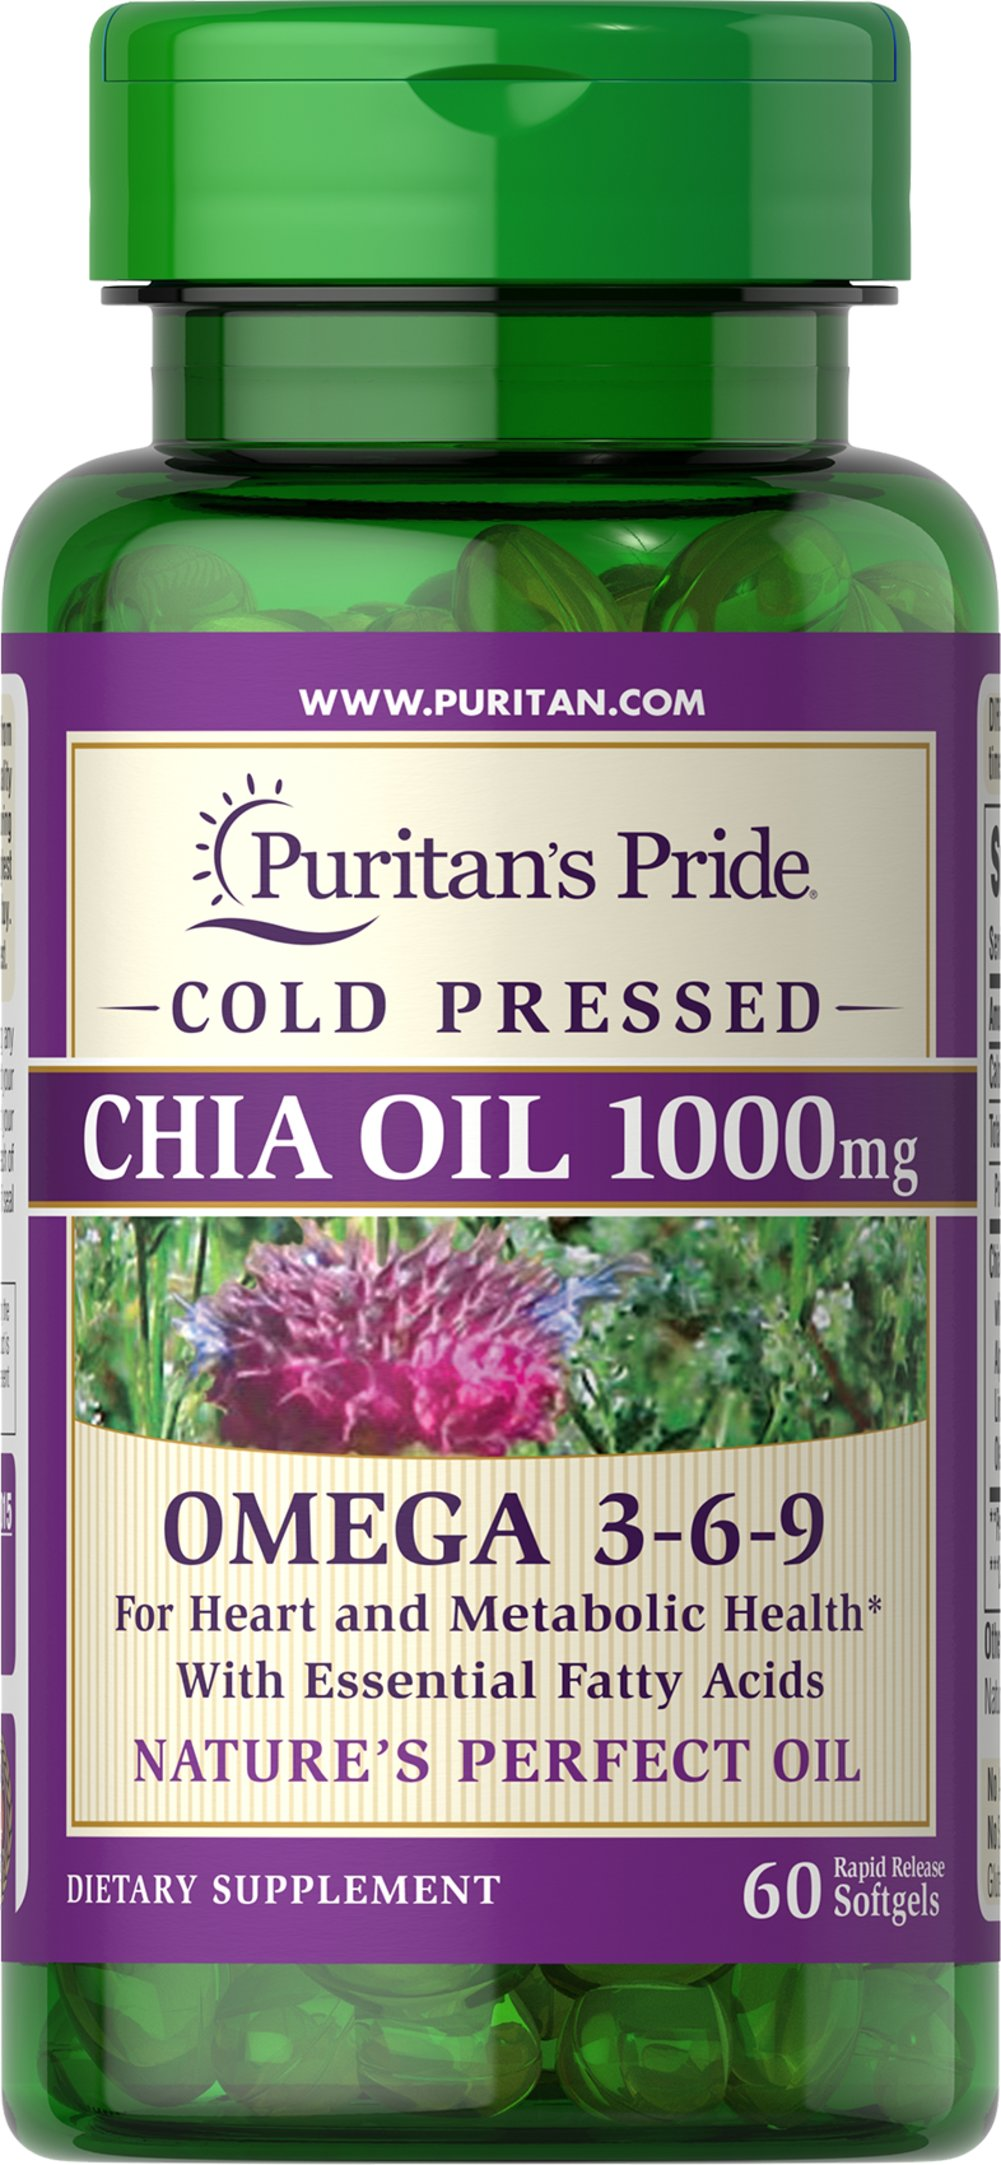 Omega 3-6-9 Chia Seed Oil 1000 mg <p>Chia Oil is perfect for anyone looking for a non-fish source of essential omega fatty acids for health and wellness.**</p><p>Lab analysis indicates that Chia Oil may even have a higher concentration of essential fats as compared to flaxseed oil, which is generally considered to be the best plant source of Omega-3 fatty acids. **</p> 60 Softgels 1000 mg $21.59